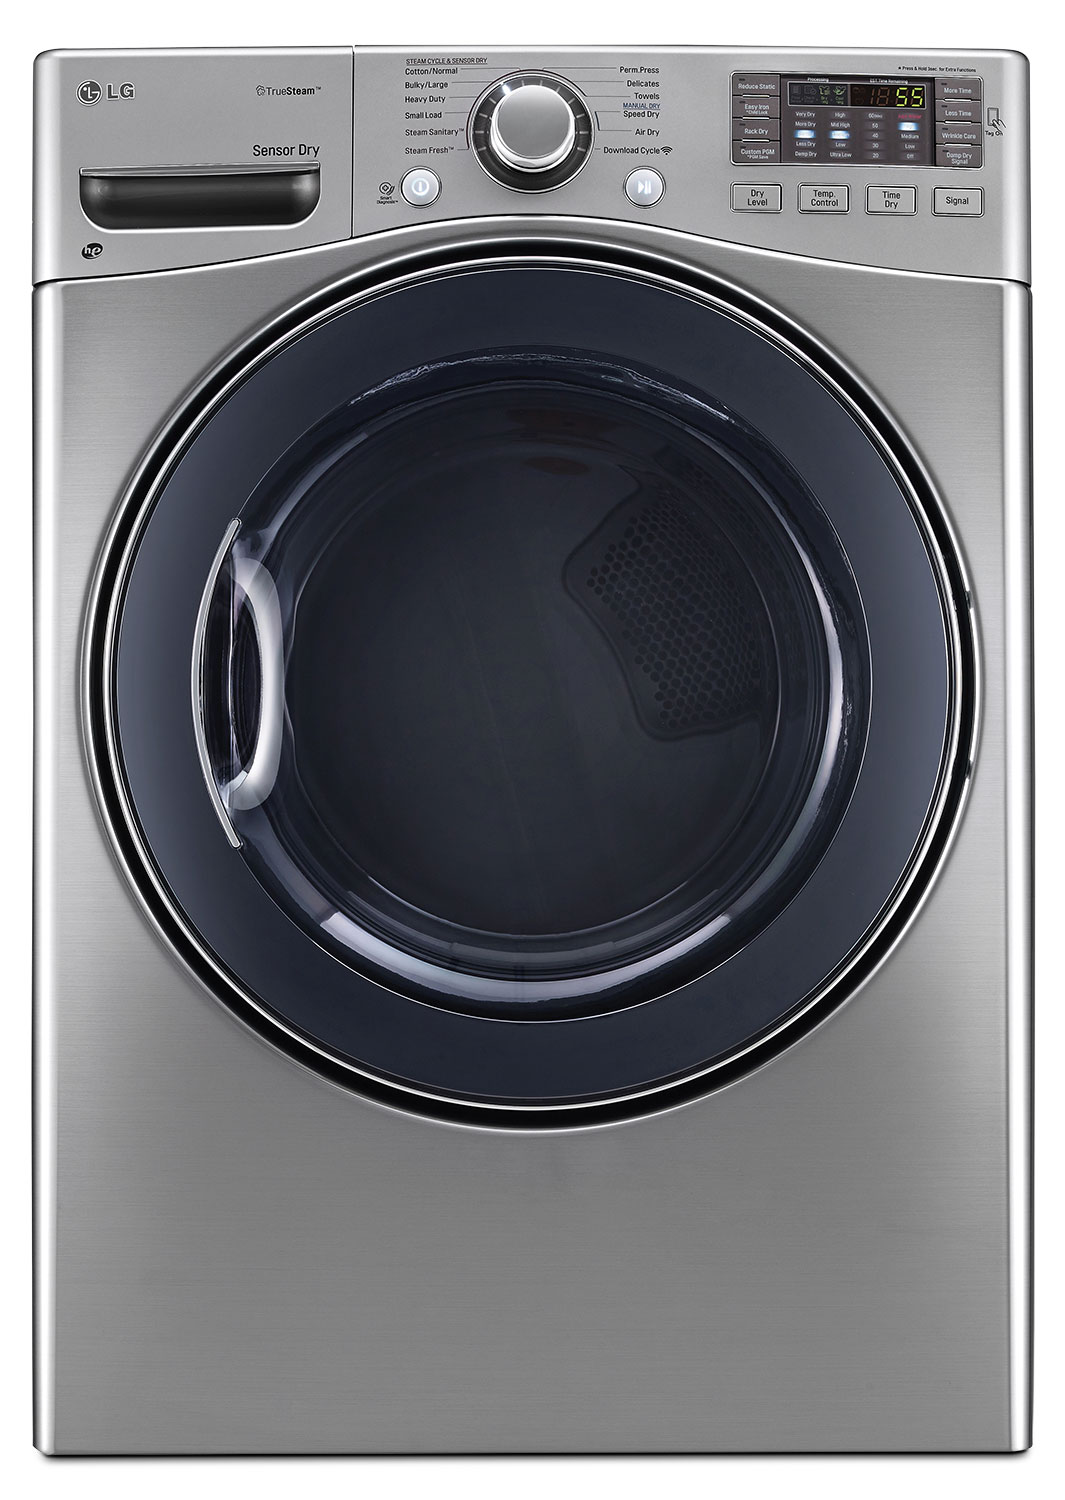 Washers and Dryers - LG 7.4 Cu. Ft. Ultra-Large Capacity High-Efficiency Electric SteamDryer™ – Graphite Steel